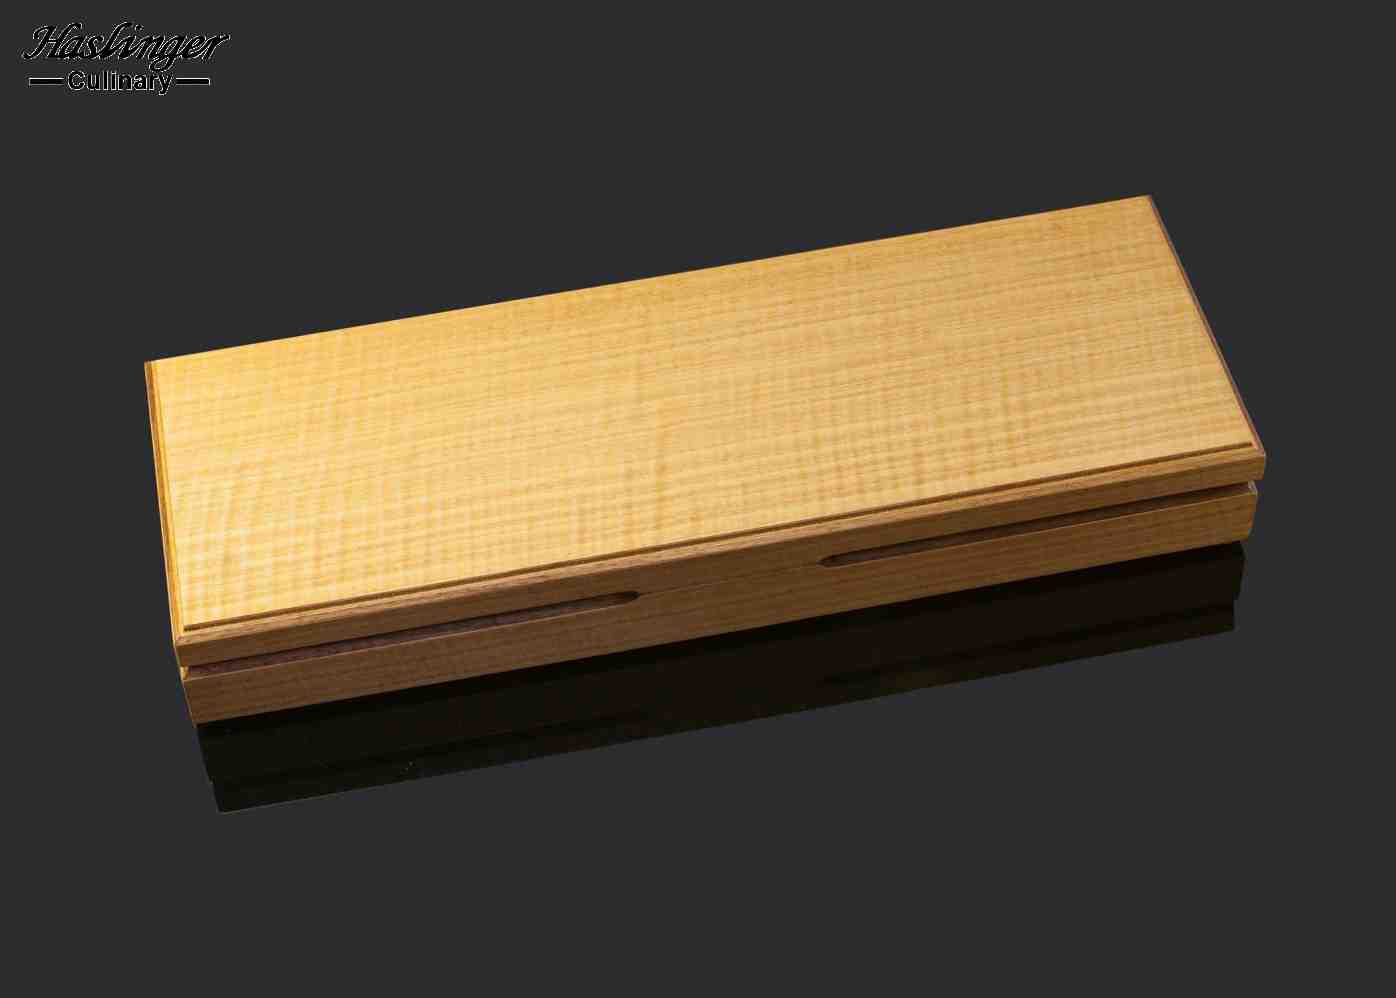 Mammoth Ivory and Stainless Steel Carving Set display box